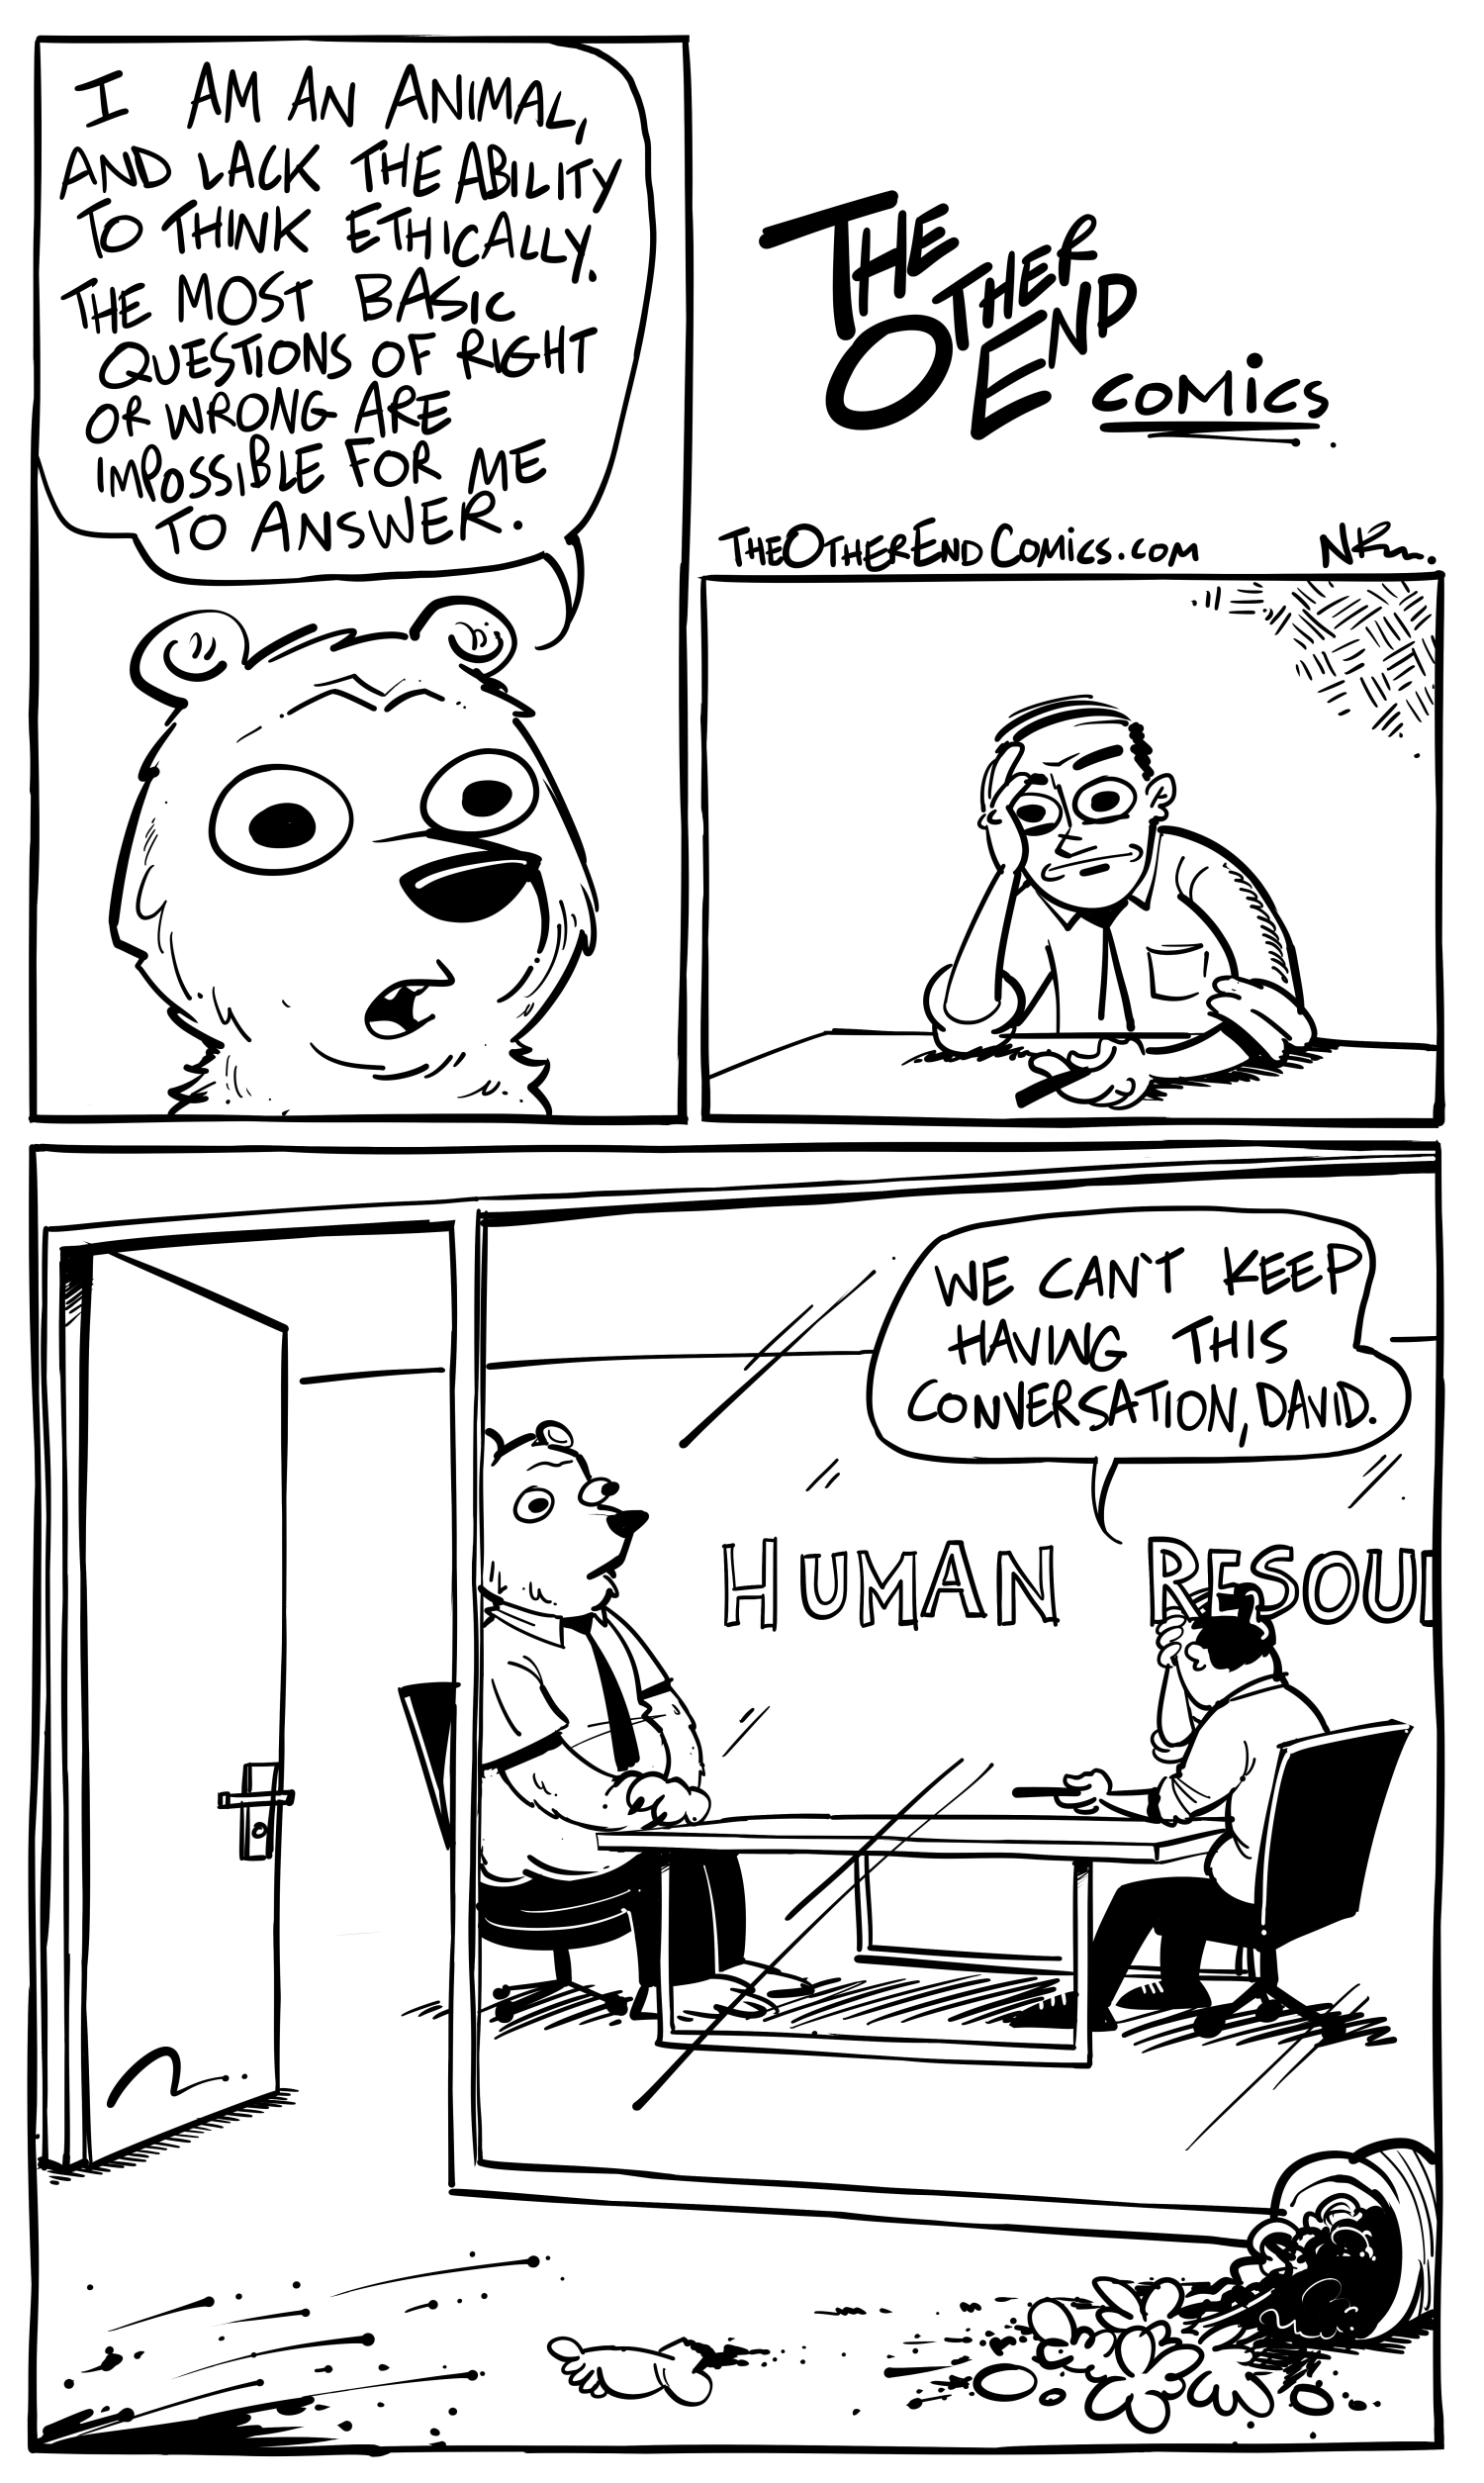 Why would an animal be called into Human Resources. This comic is so fake